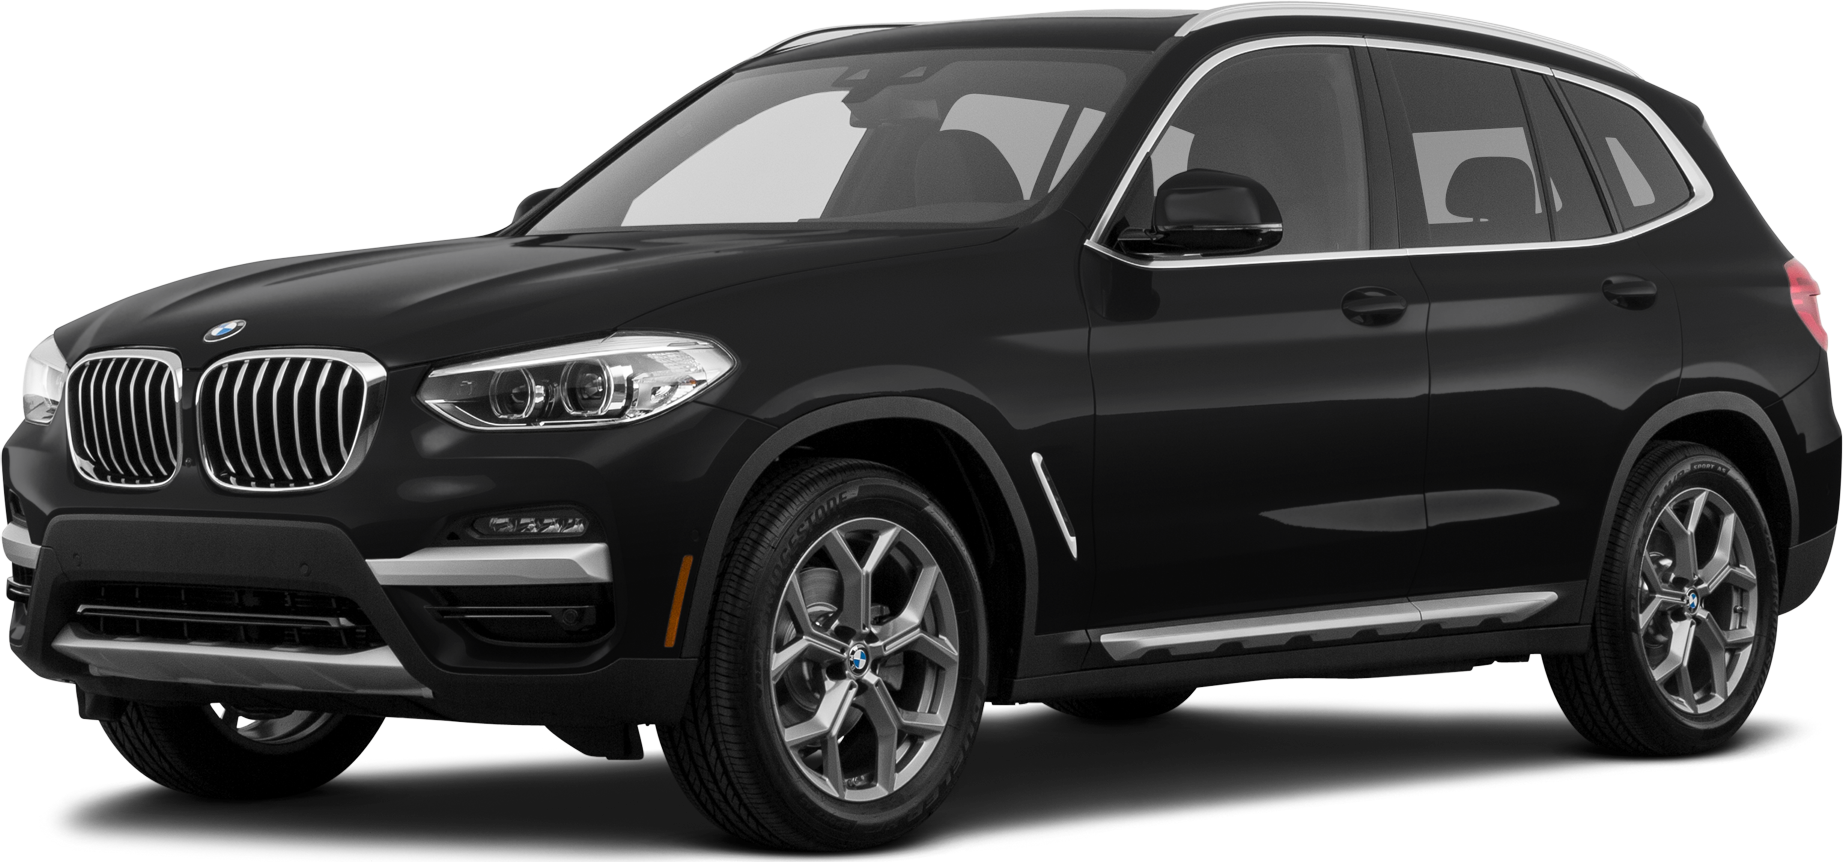 2021 Bmw X3 Prices Reviews Pictures Kelley Blue Book